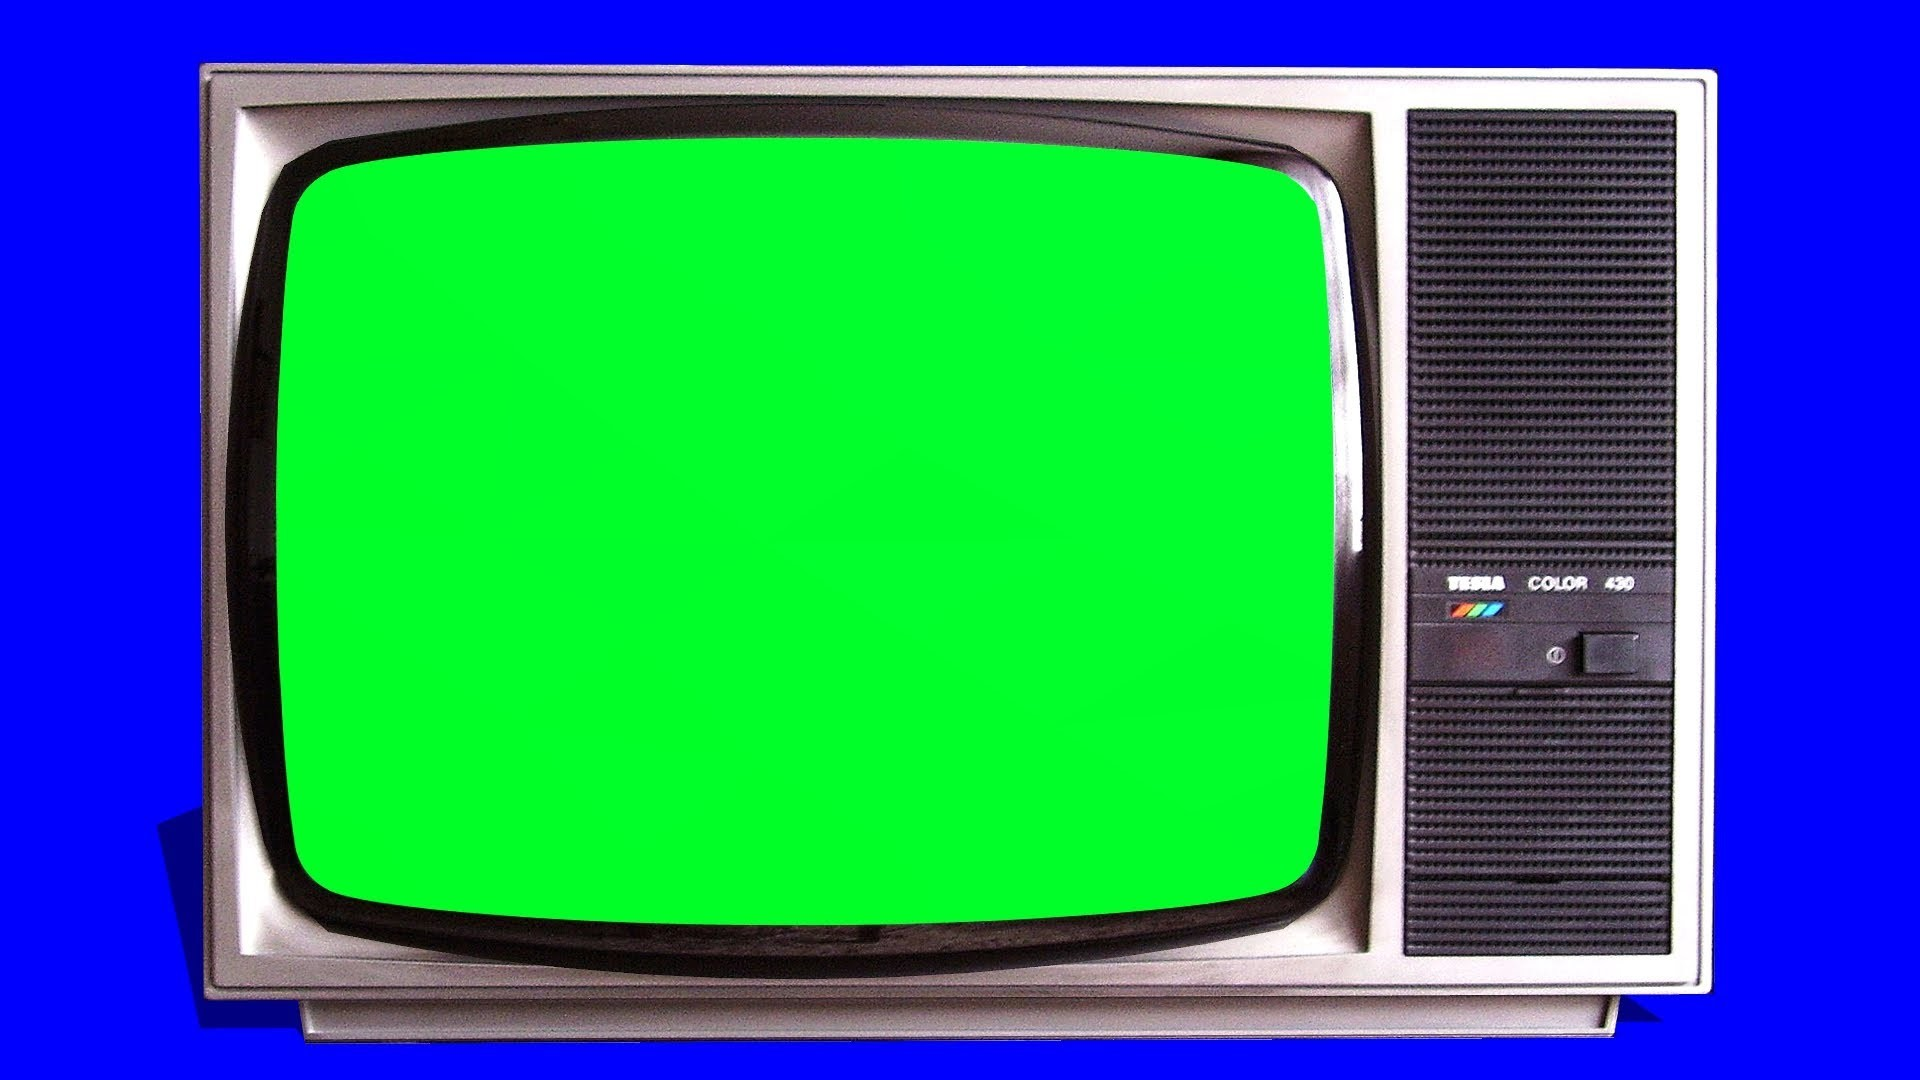 1920x1080 old TV vintage Televison green screen - tracking shot and stills - free green  screen 1